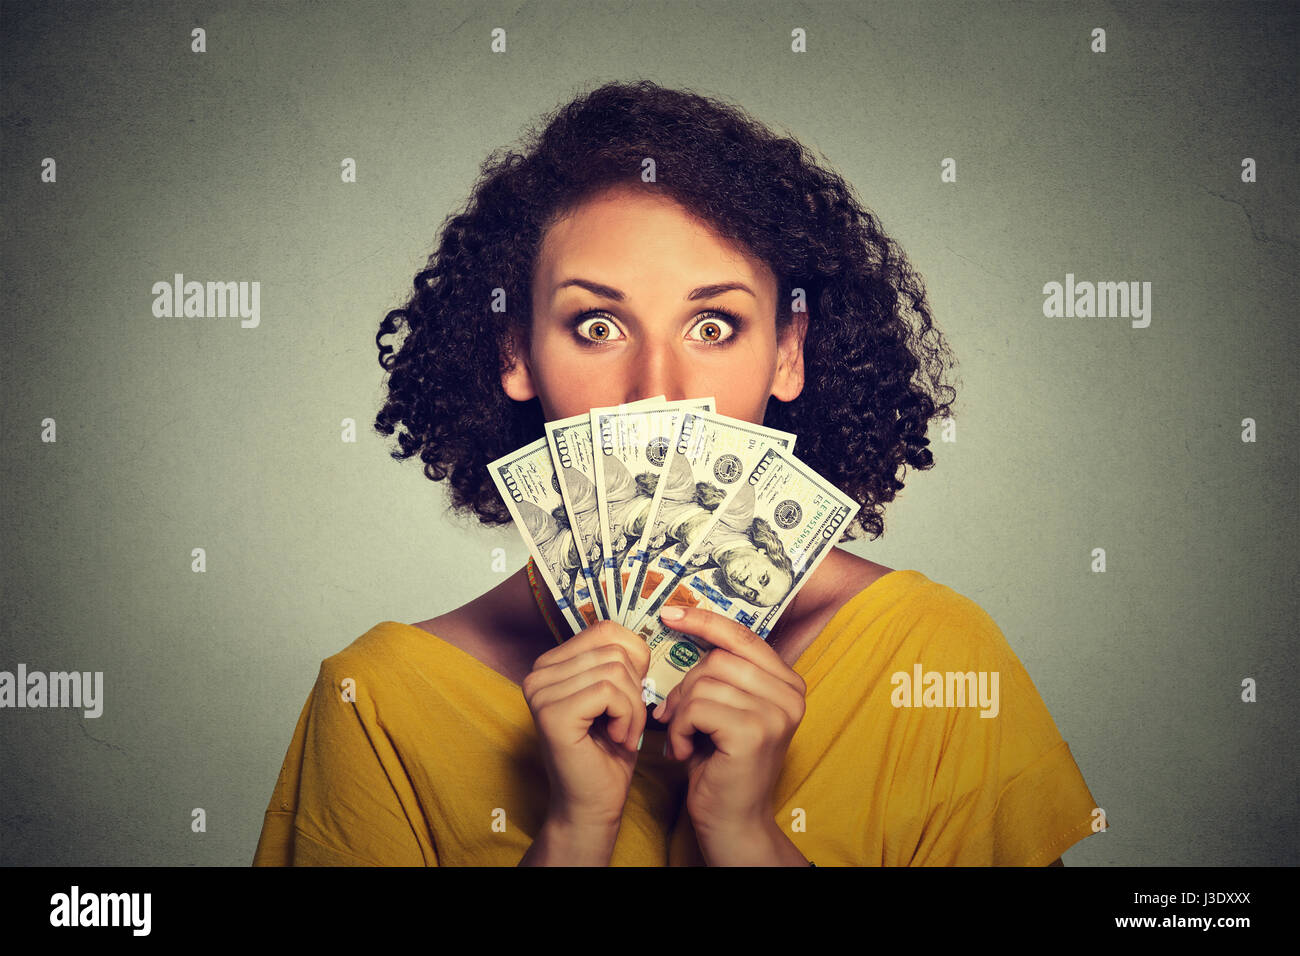 Scared looking woman hiding picking through dollar banknotes - Stock Image